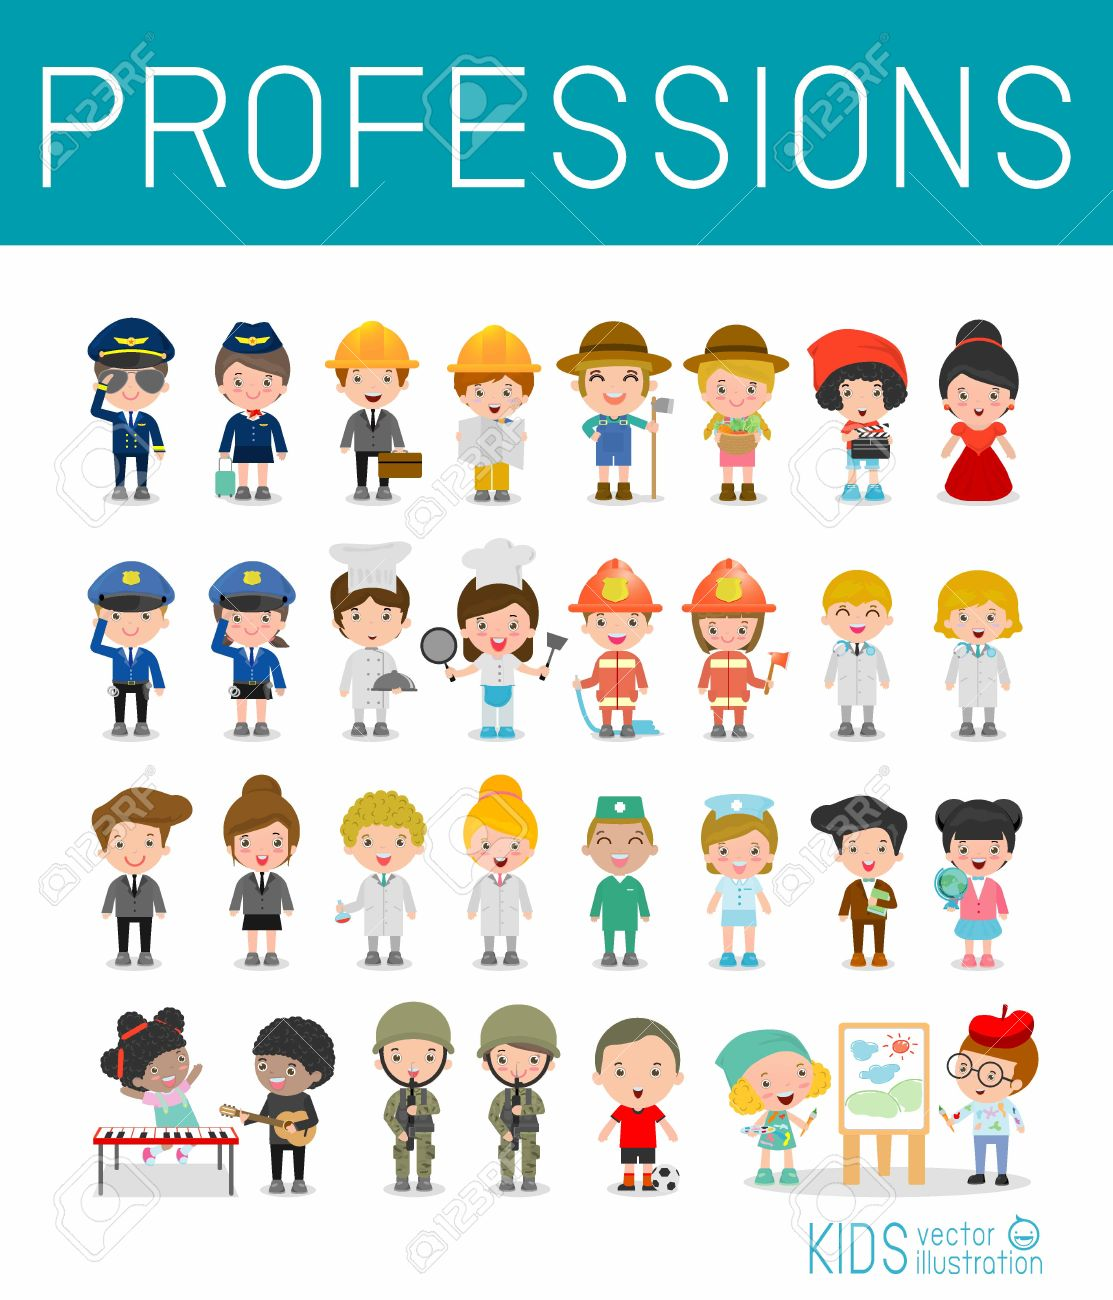 Kids Vector Characters Collection isolated on white background, professions for kids, children profession, different people professions characters set, kids profession, different professions - 57841091